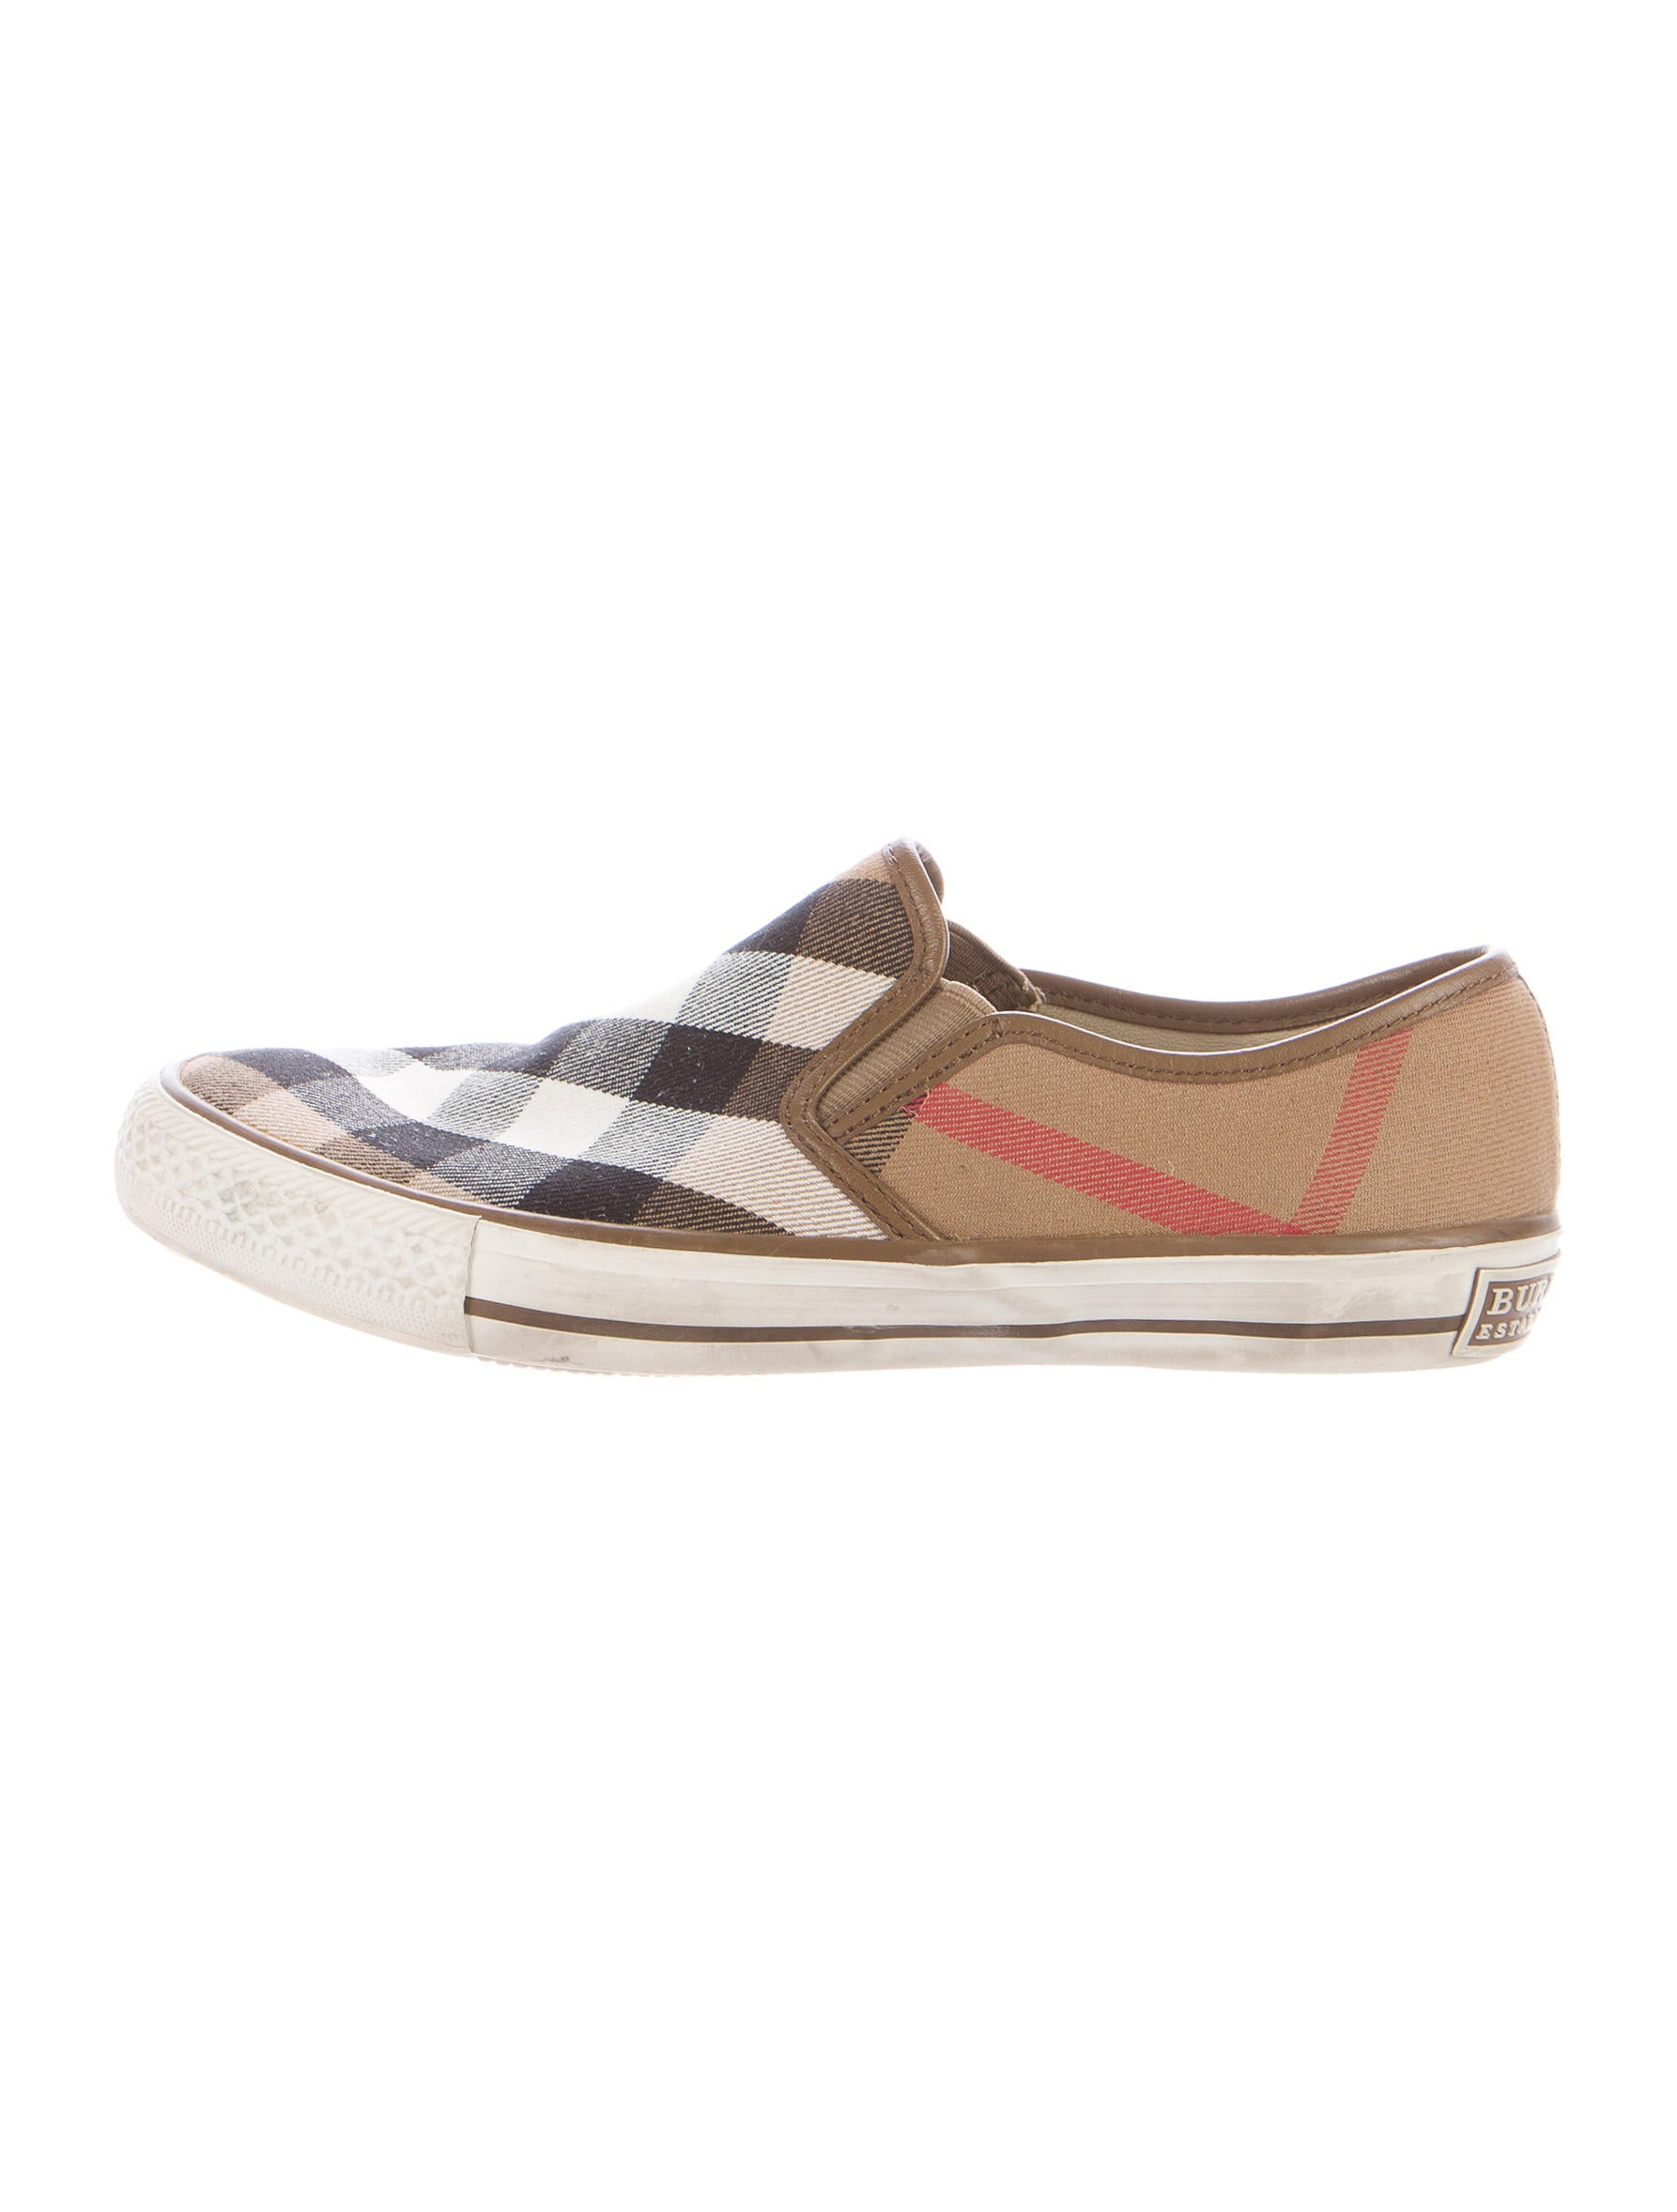 burberry house check slip on sneakers shoes bur68309